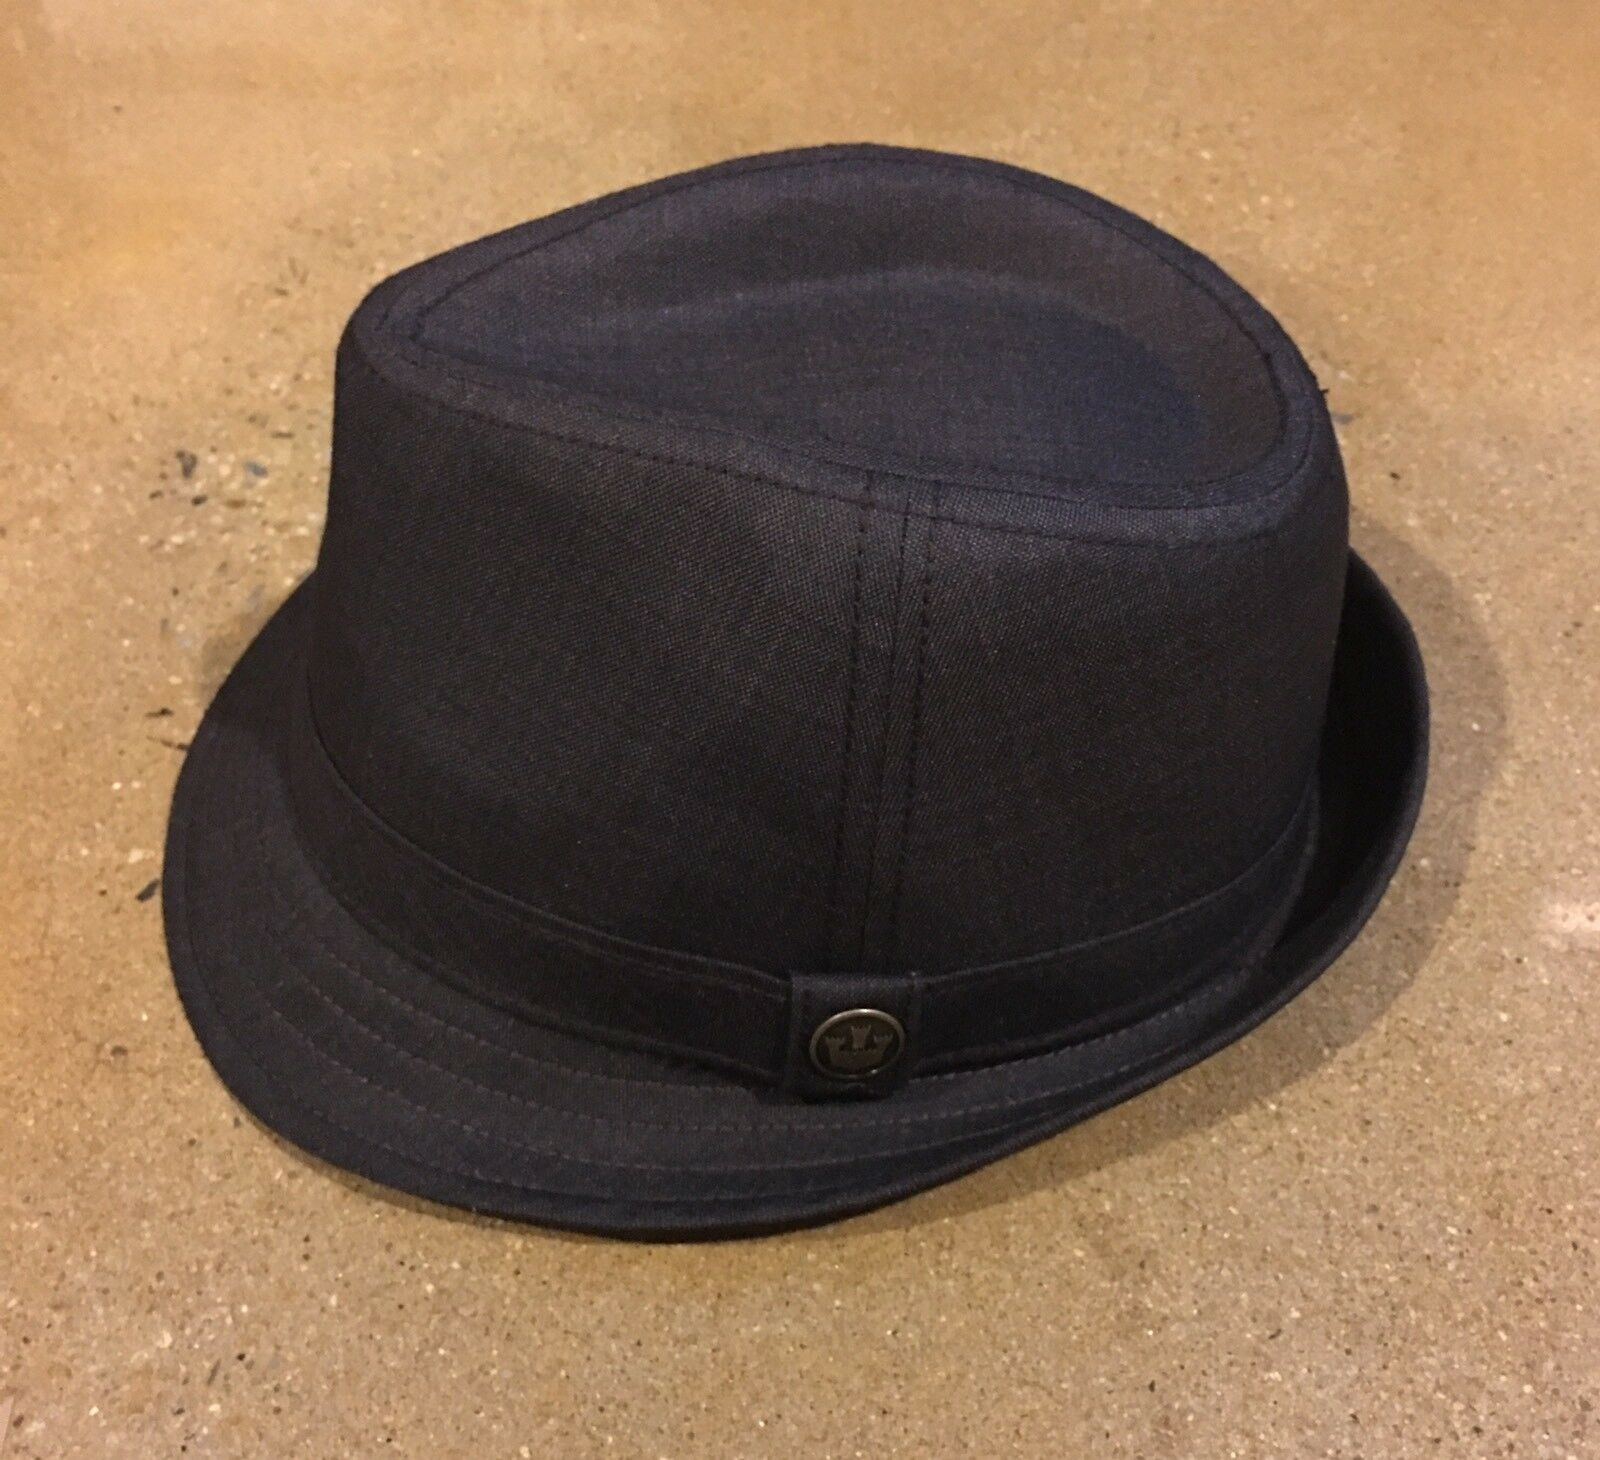 Goorin Brothers Tim Johnson Classic Fedora Hat  Deadstock Olive Large 7 3/8 Deadstock  a6088d